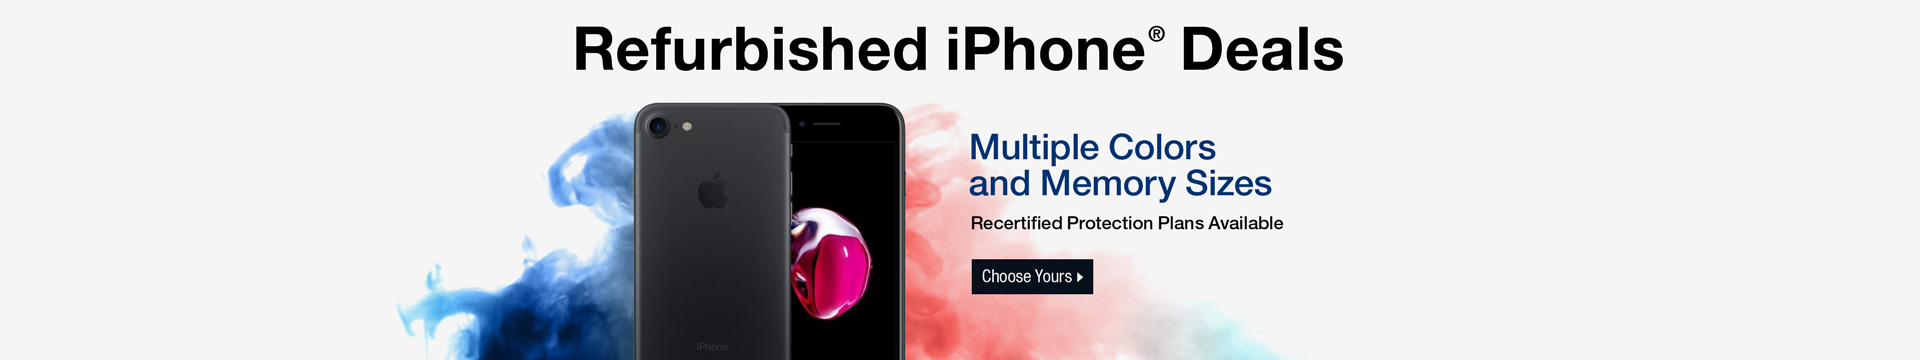 Refurbished iPhone Deals